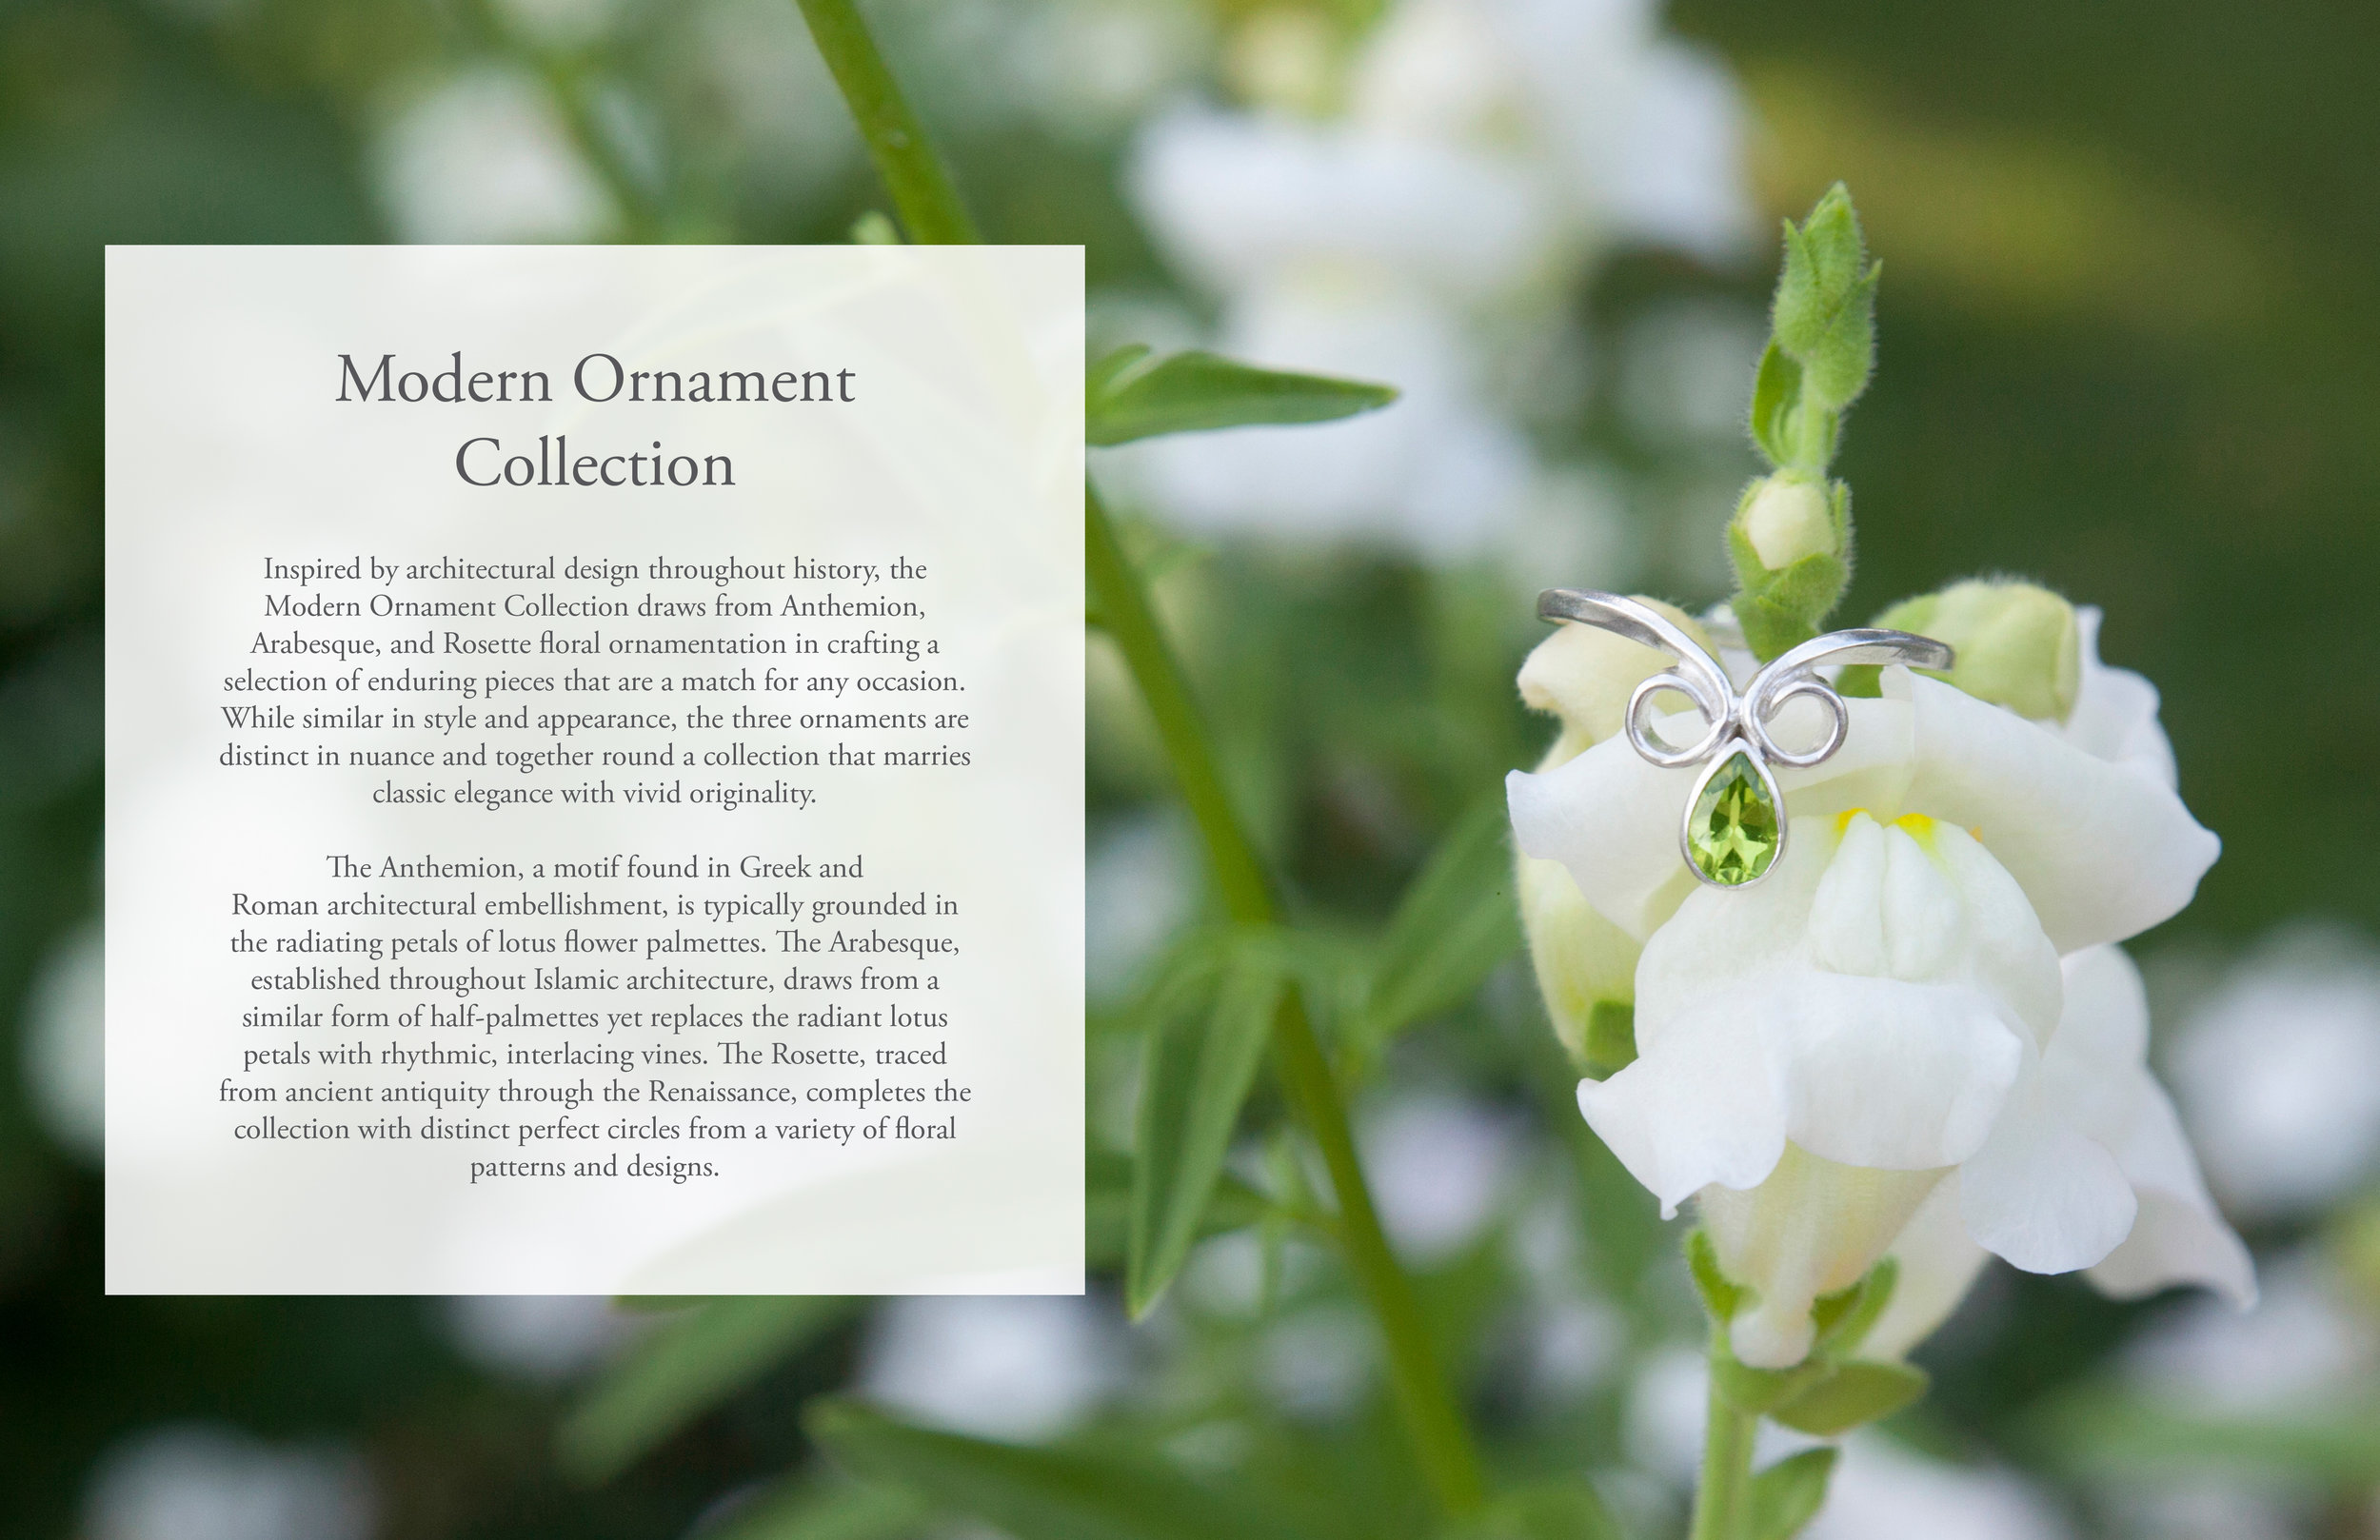 Modern Ornament Collection